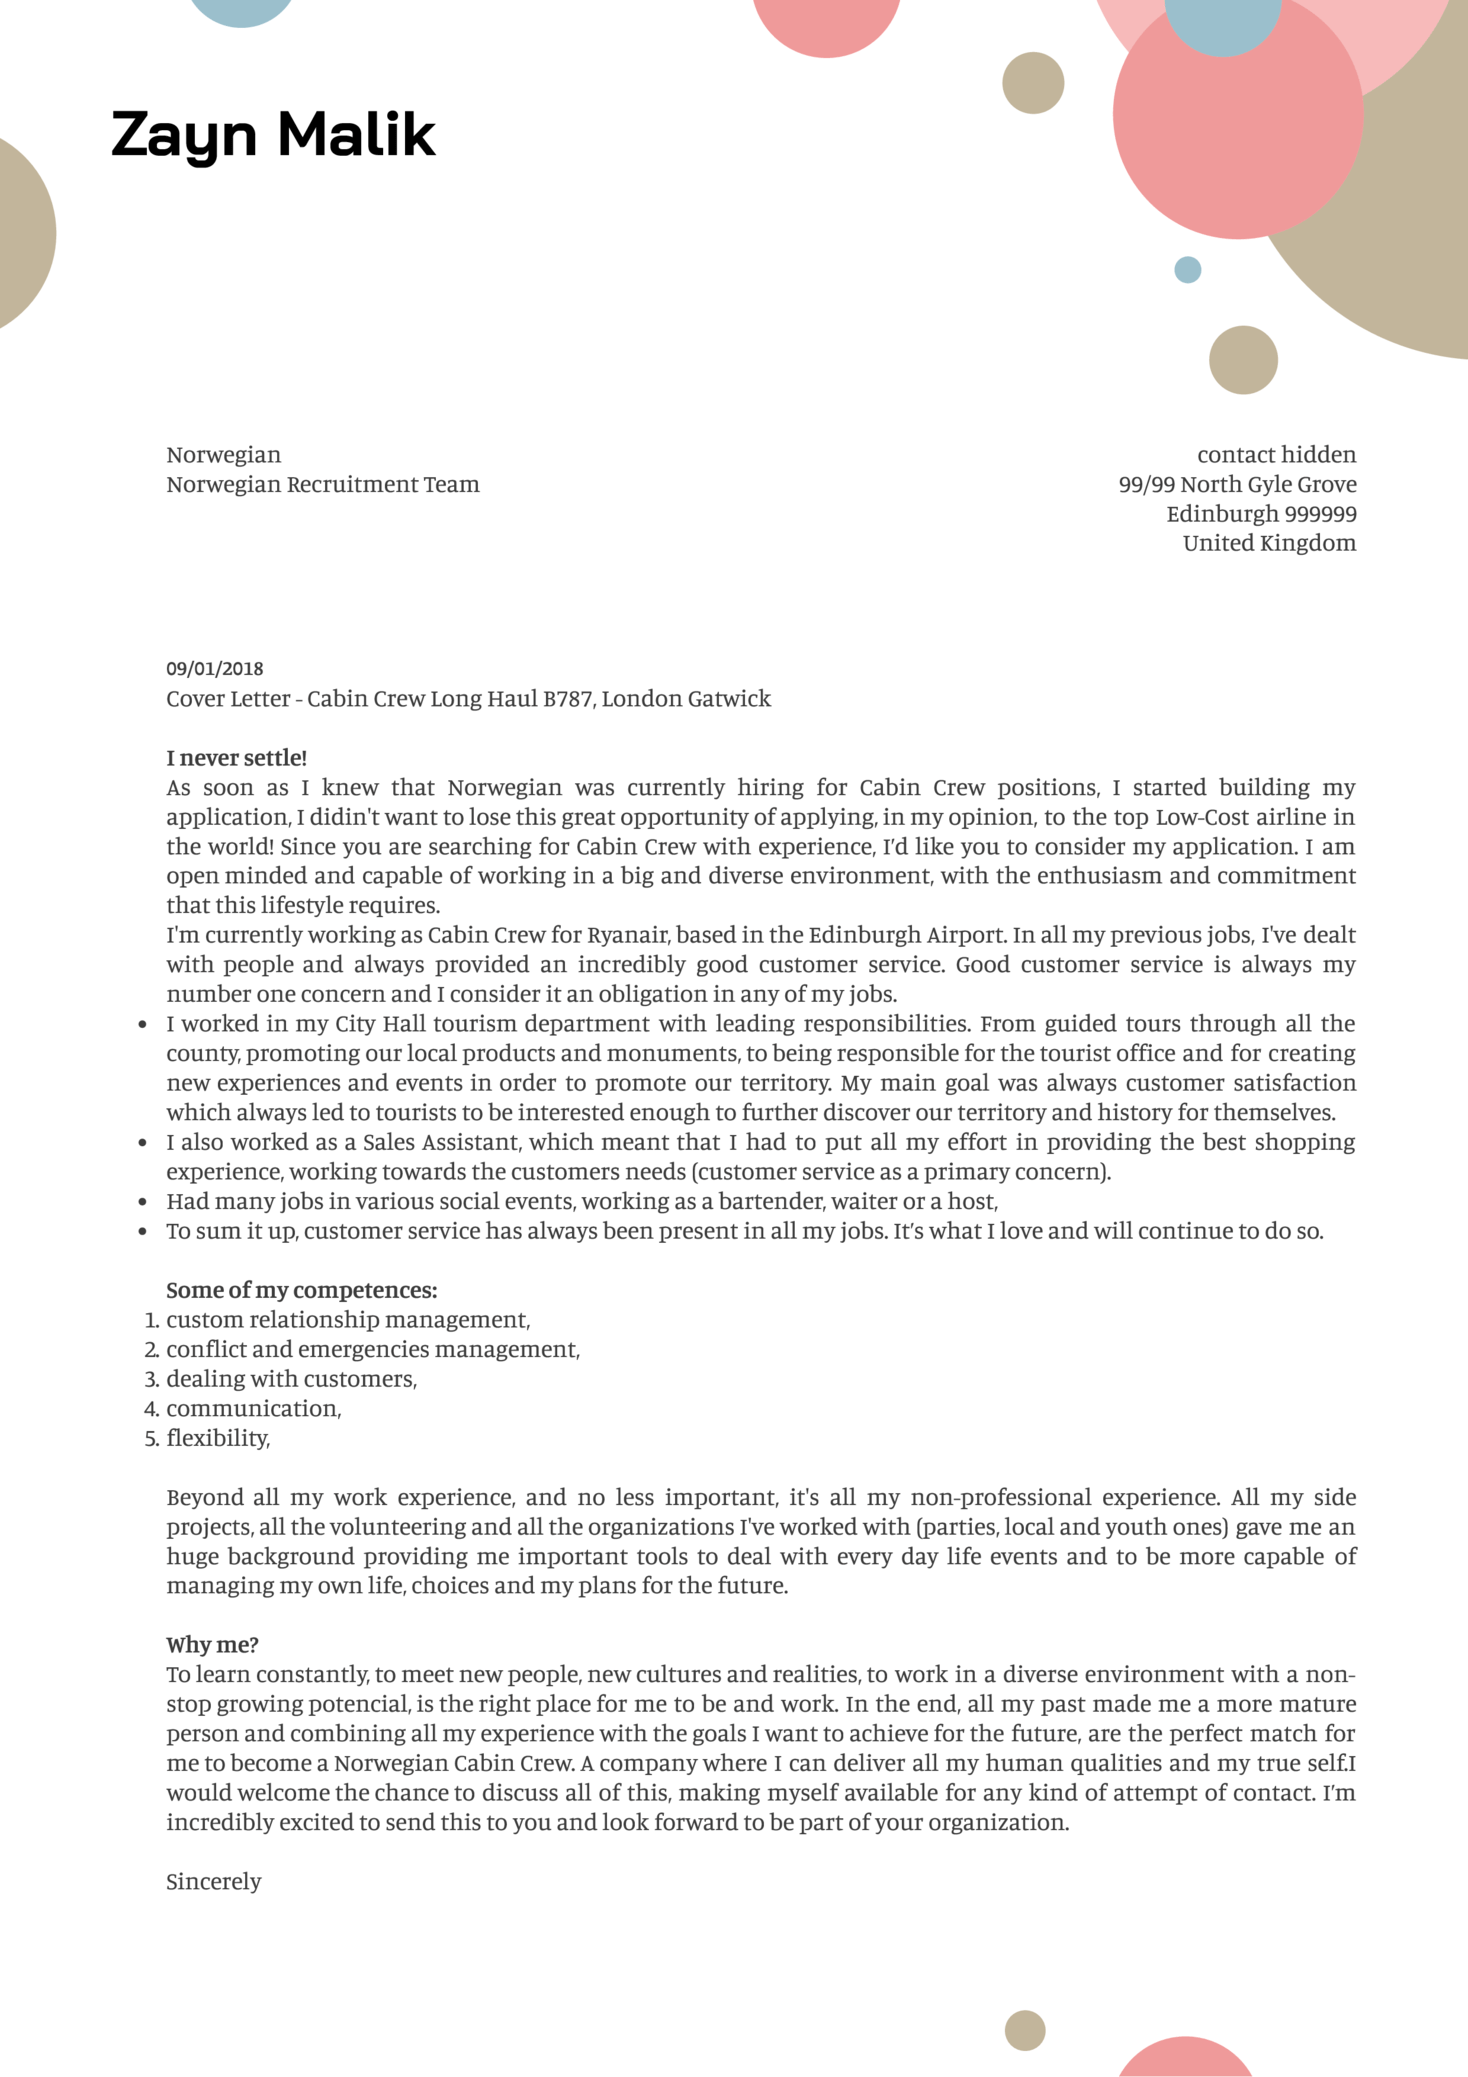 Cover letter examples by real people norwegian cabin crew cover norwegian cabin crew cover letter sample altavistaventures Gallery